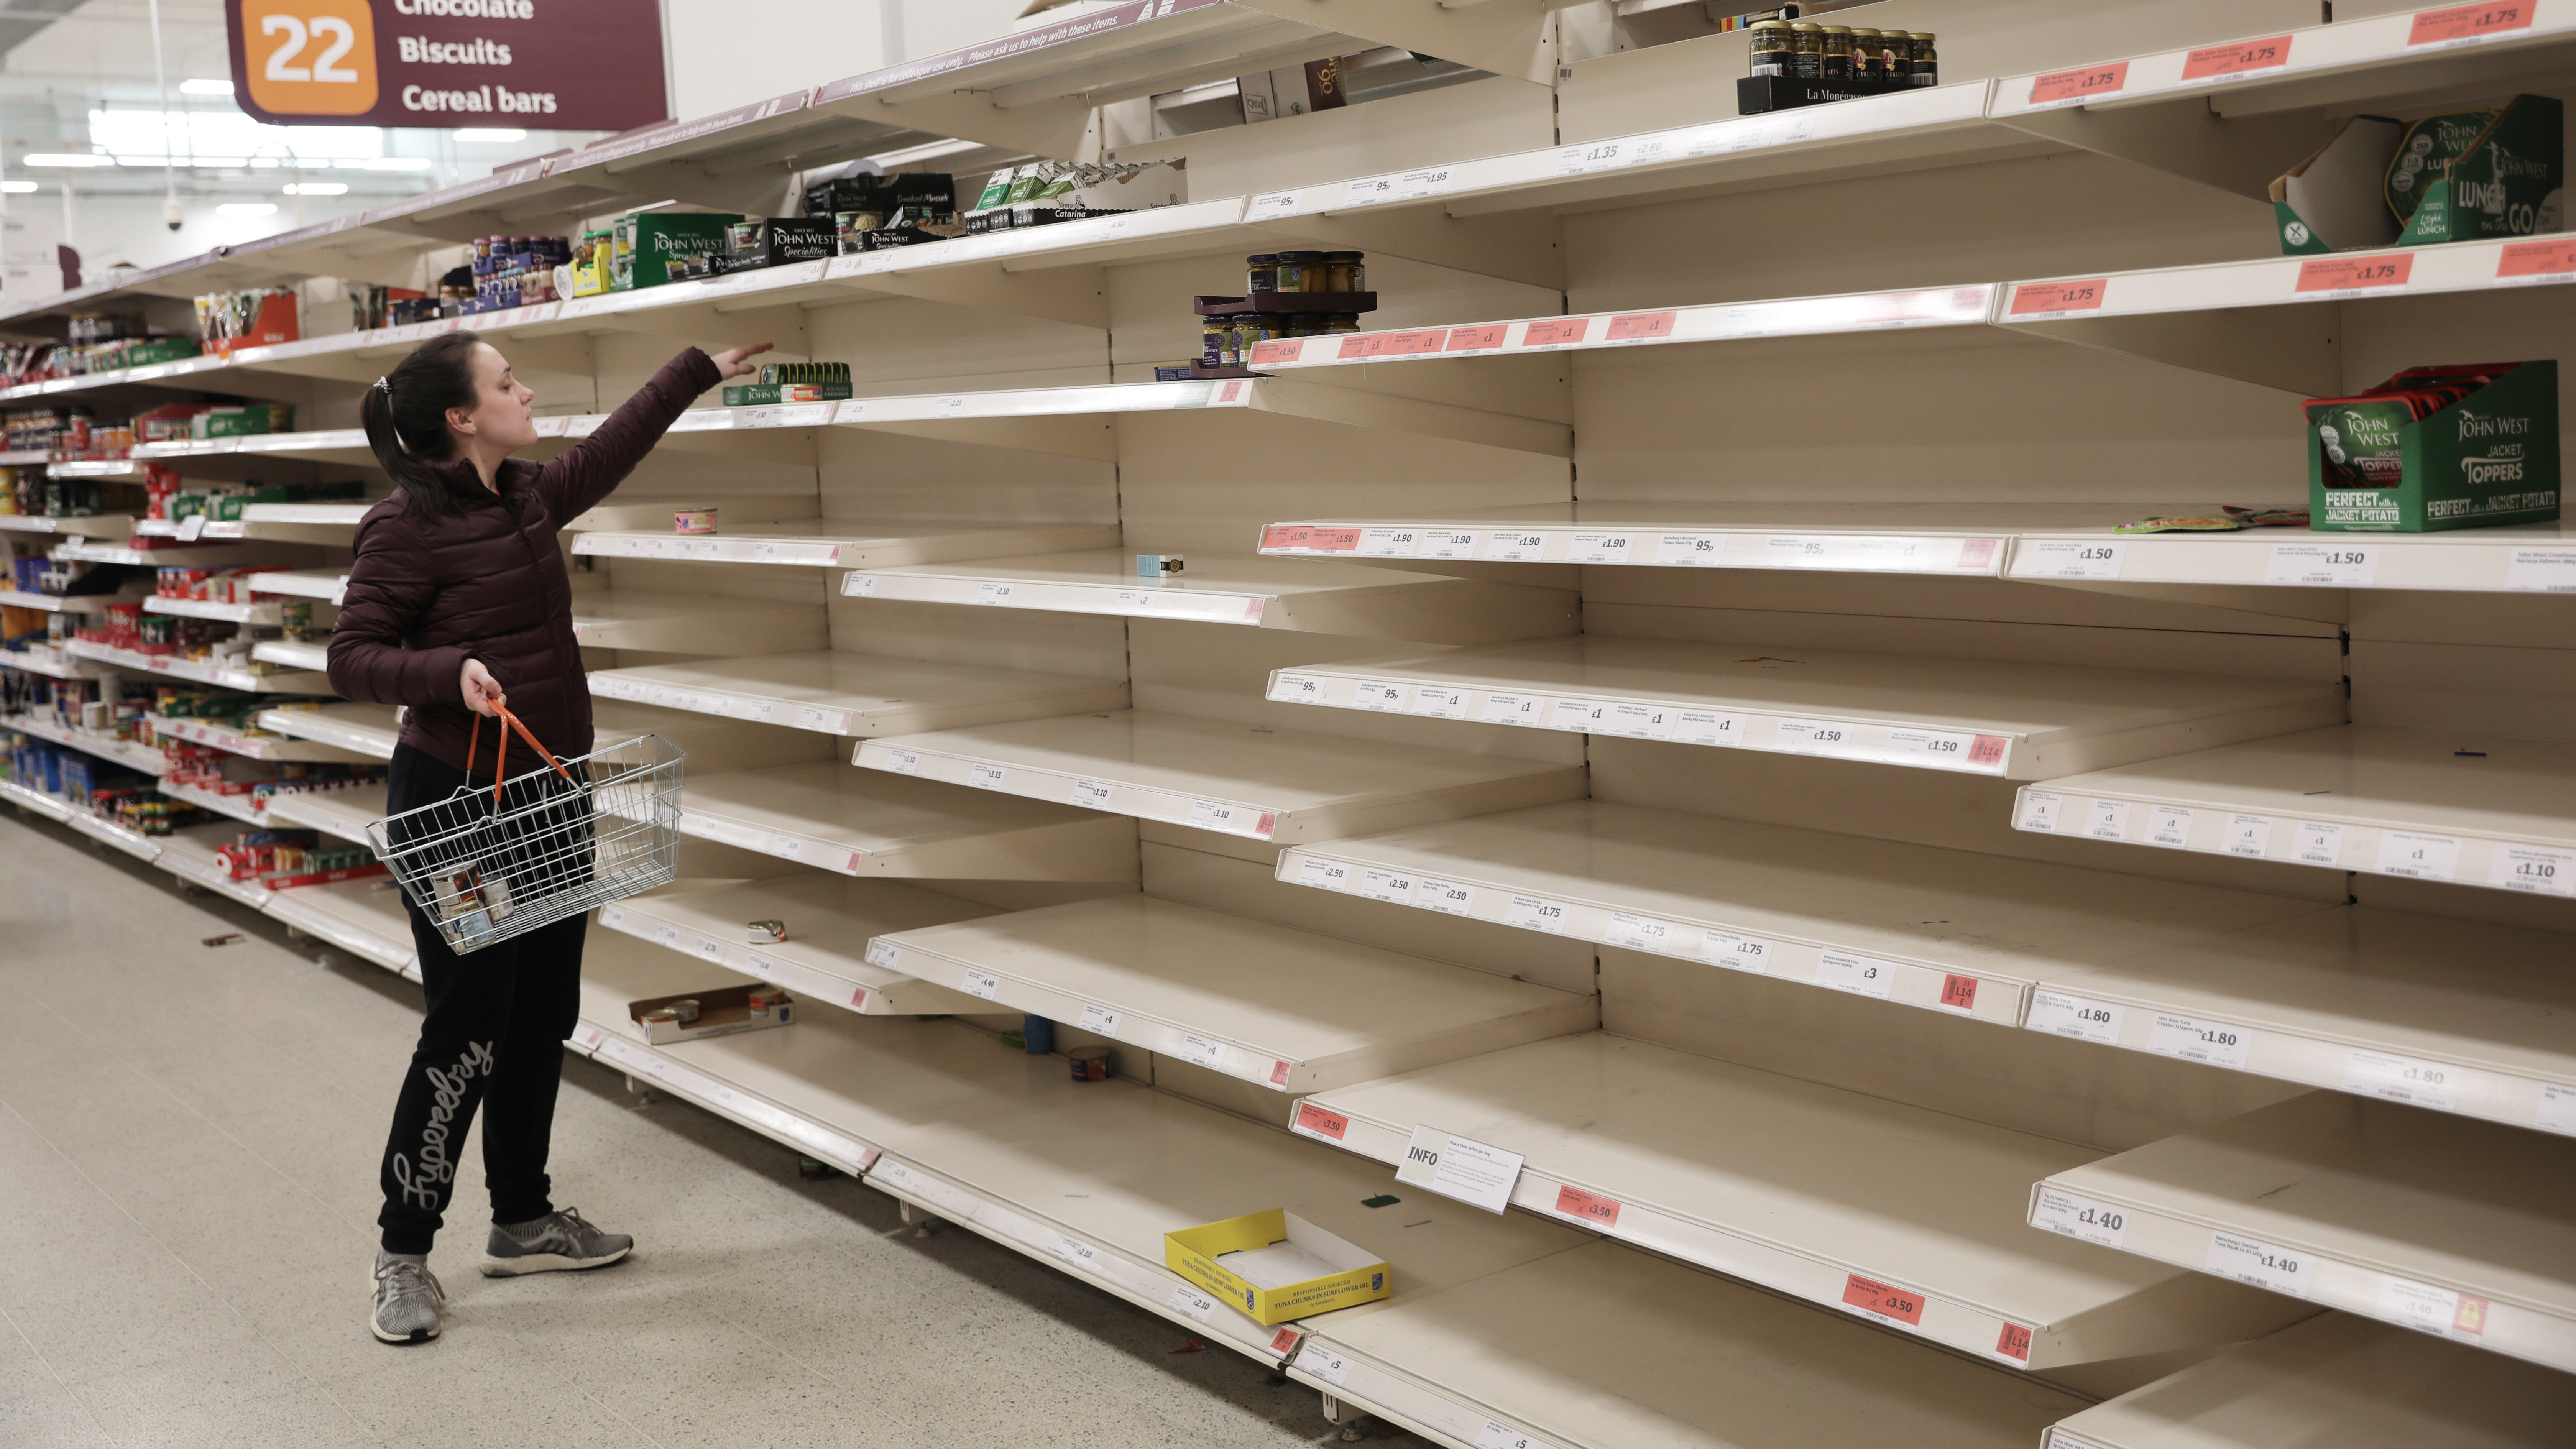 What To Expect When You're Grocery Shopping During The Coronavirus Shutdown